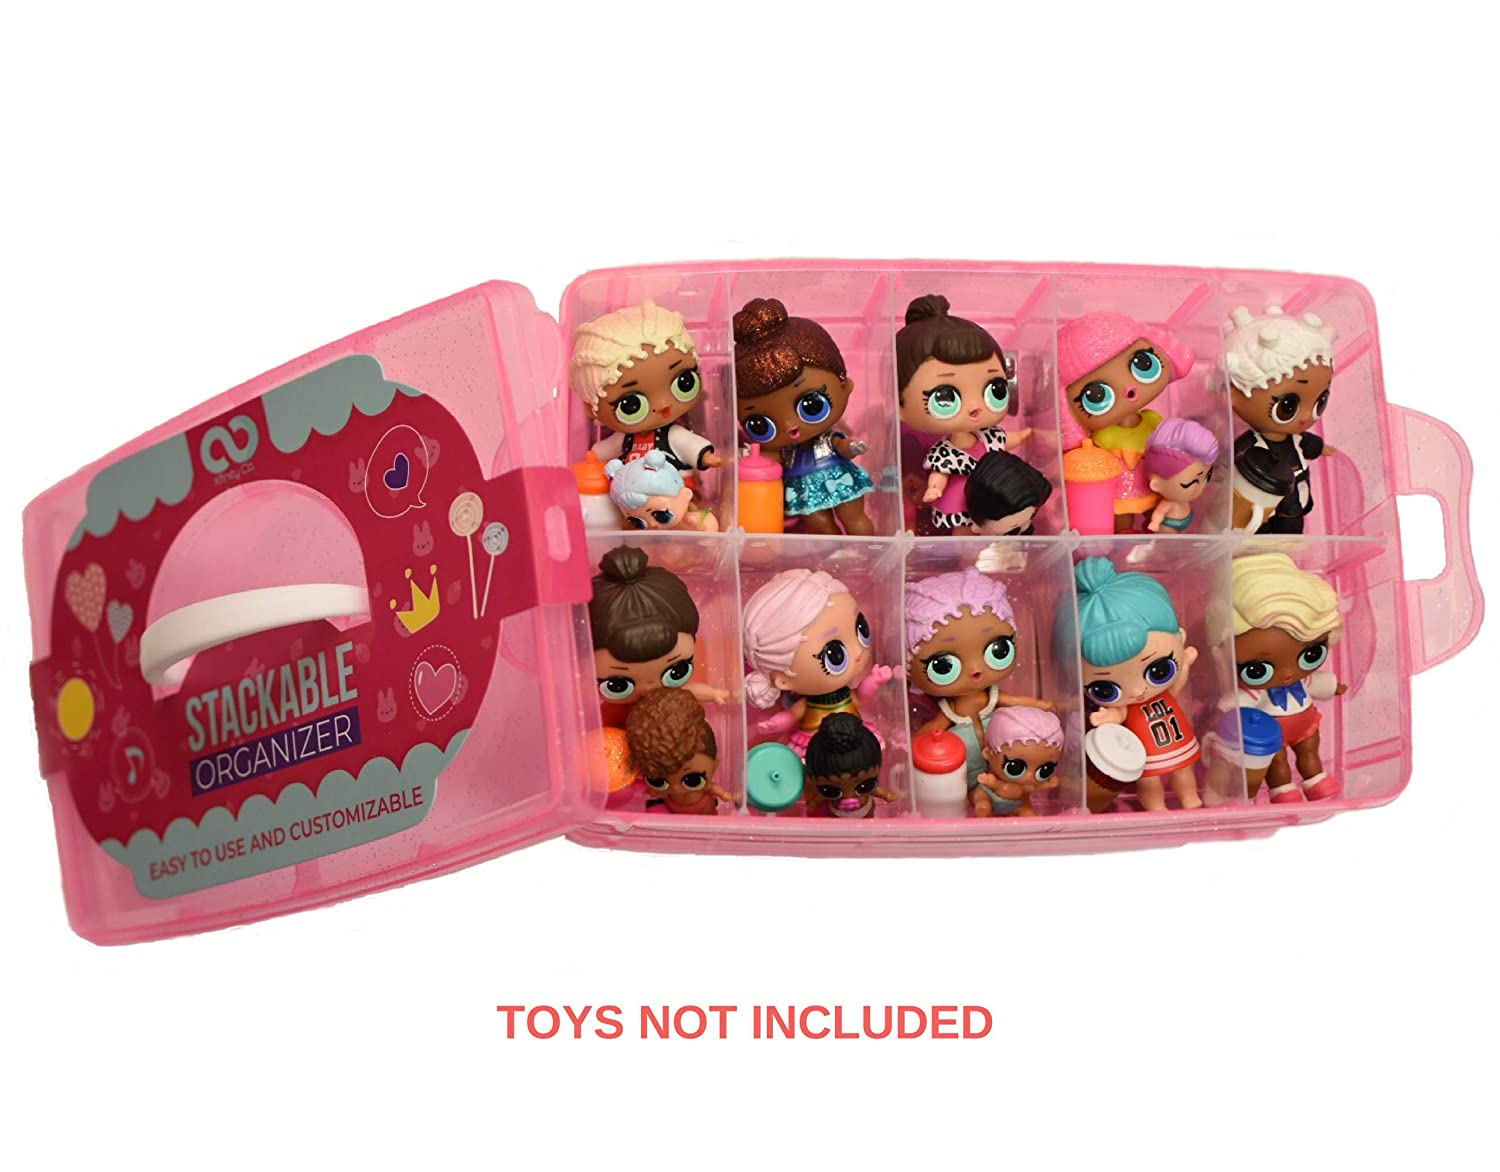 Glitter Pink LOL Storage Case Customizable Toy Adjustable Organizer Case Stackable 3 Tier Perfect for Dolls and Small Collectible Toys 30 Compartments XFINITYCO Toys not Included